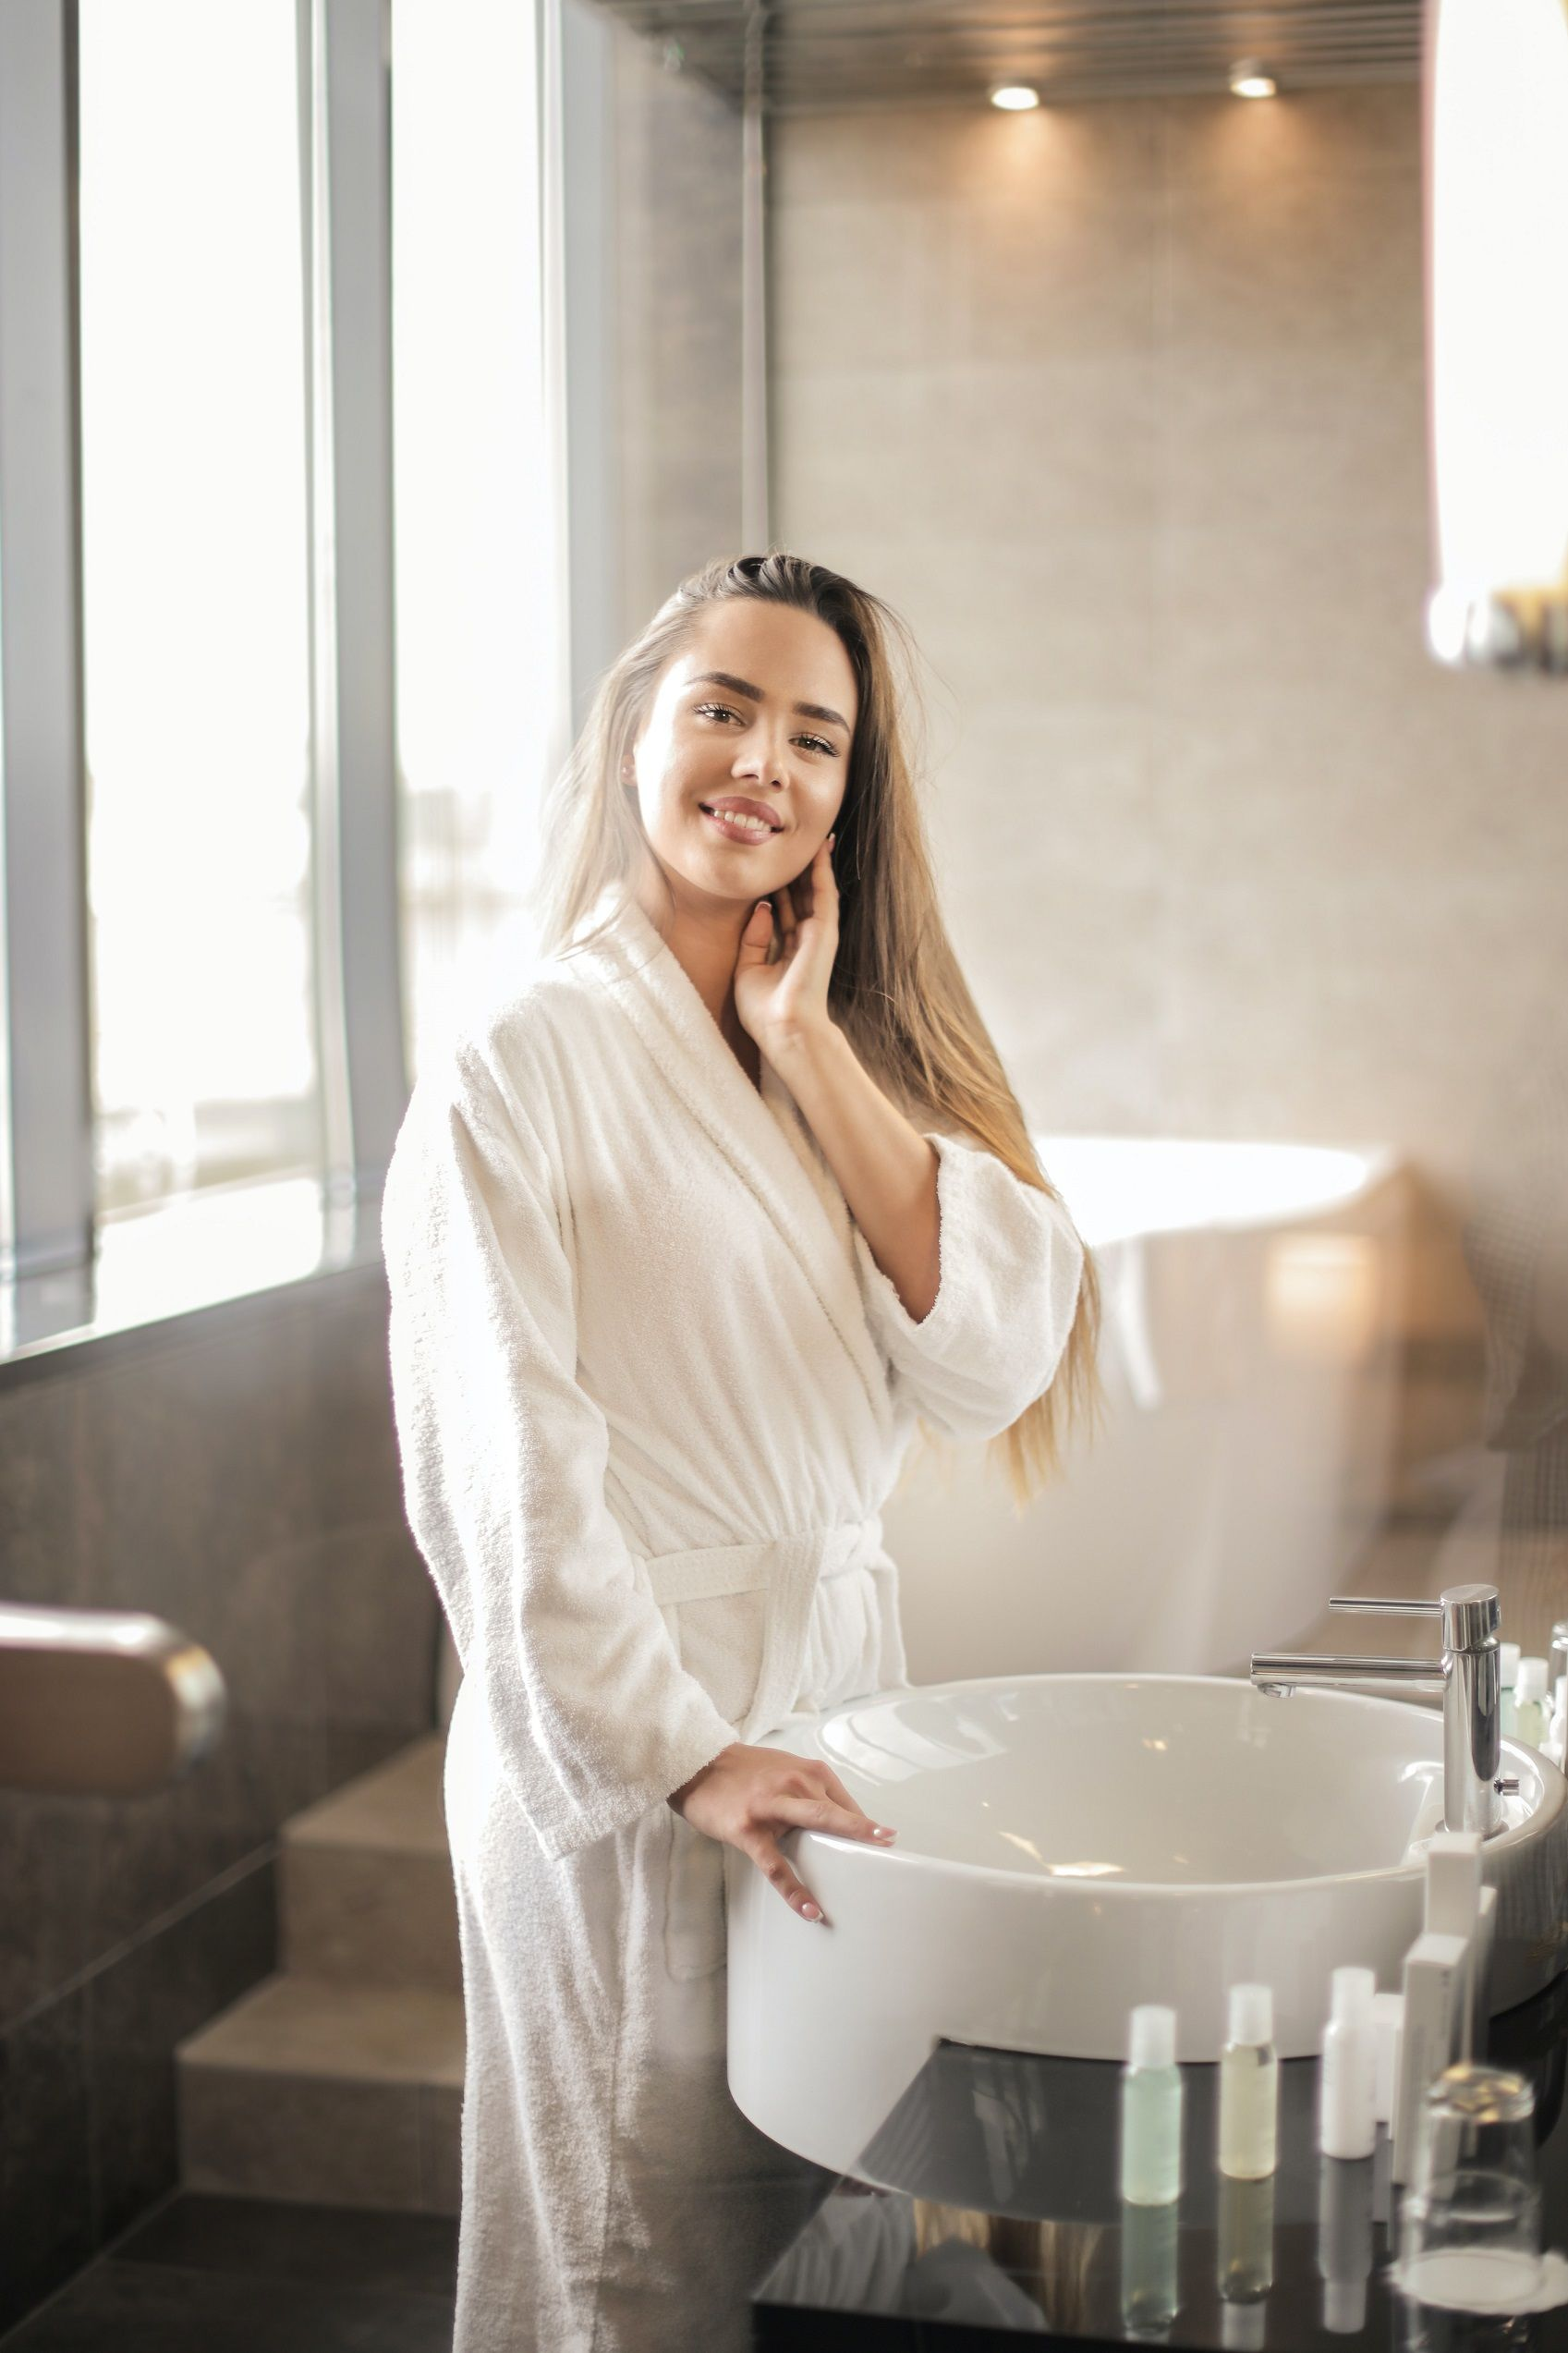 Scrub scrub: what it is and how to use it at home